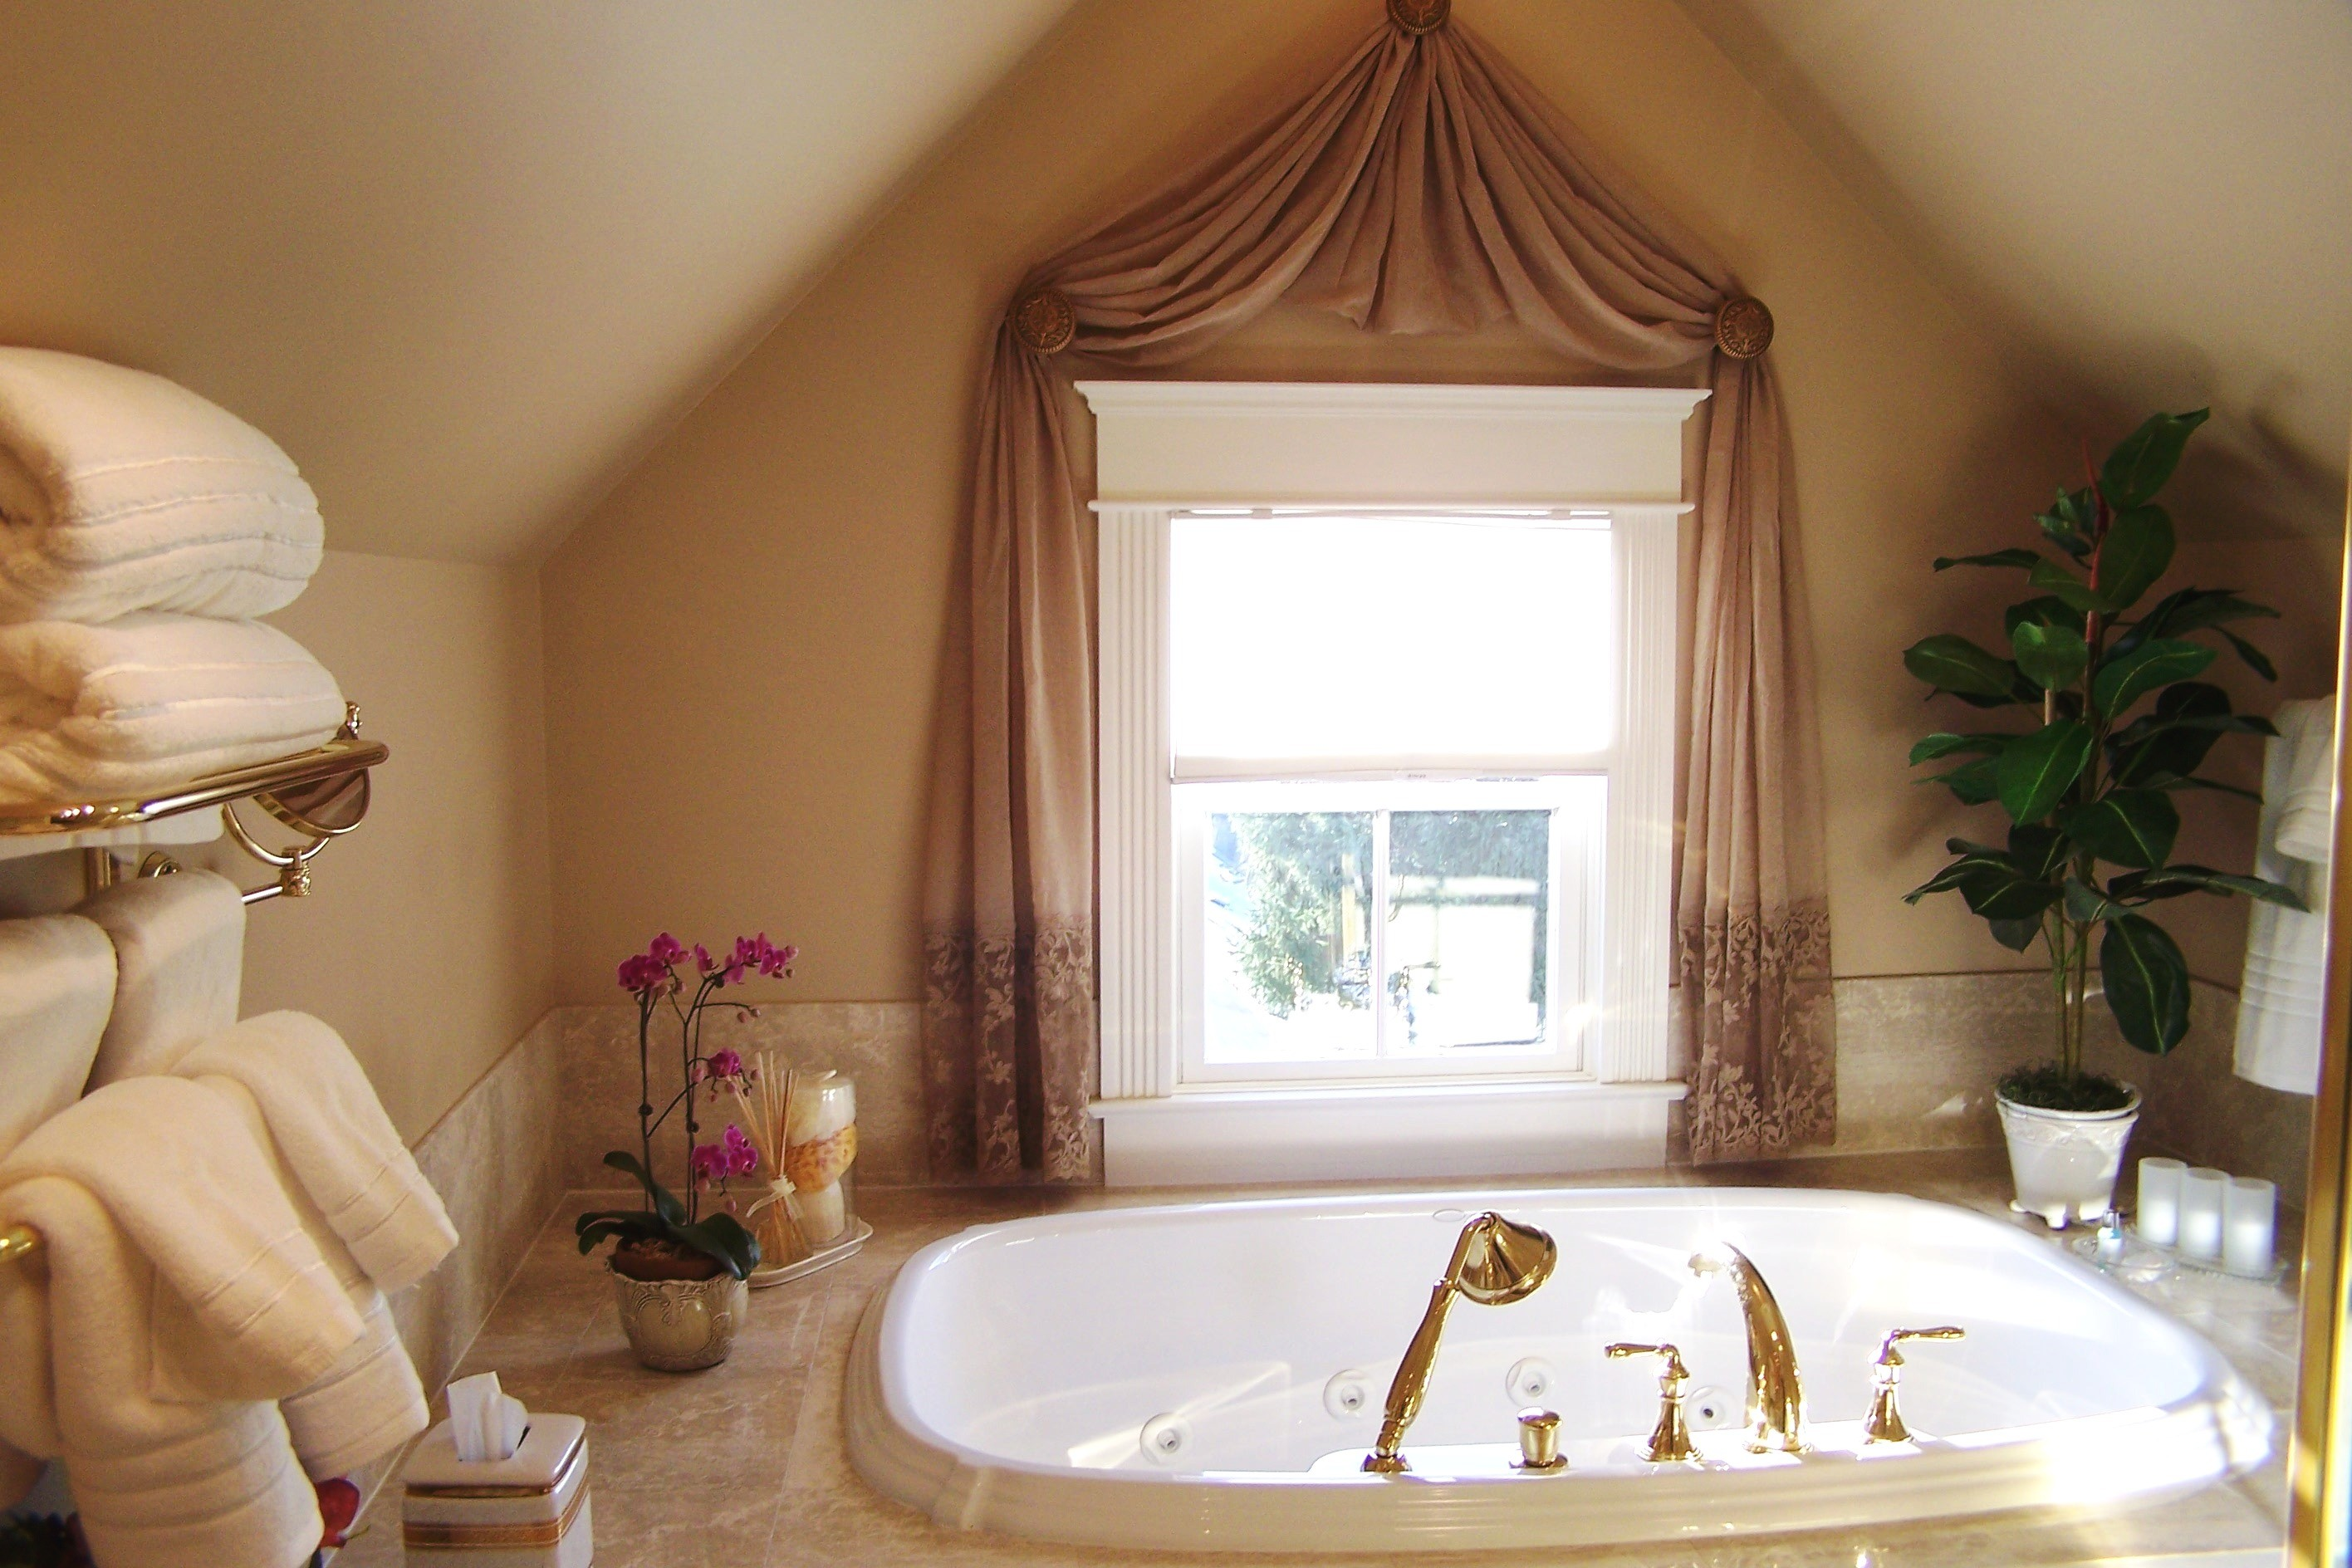 interior-bathroom-interior-design-with-white-stained-wooden-glass-window-using-brown-curtain-combined-with-white-ceramic-jacuzzi-alluring-curtain-styles-for-windows-to-sweetened-your-room